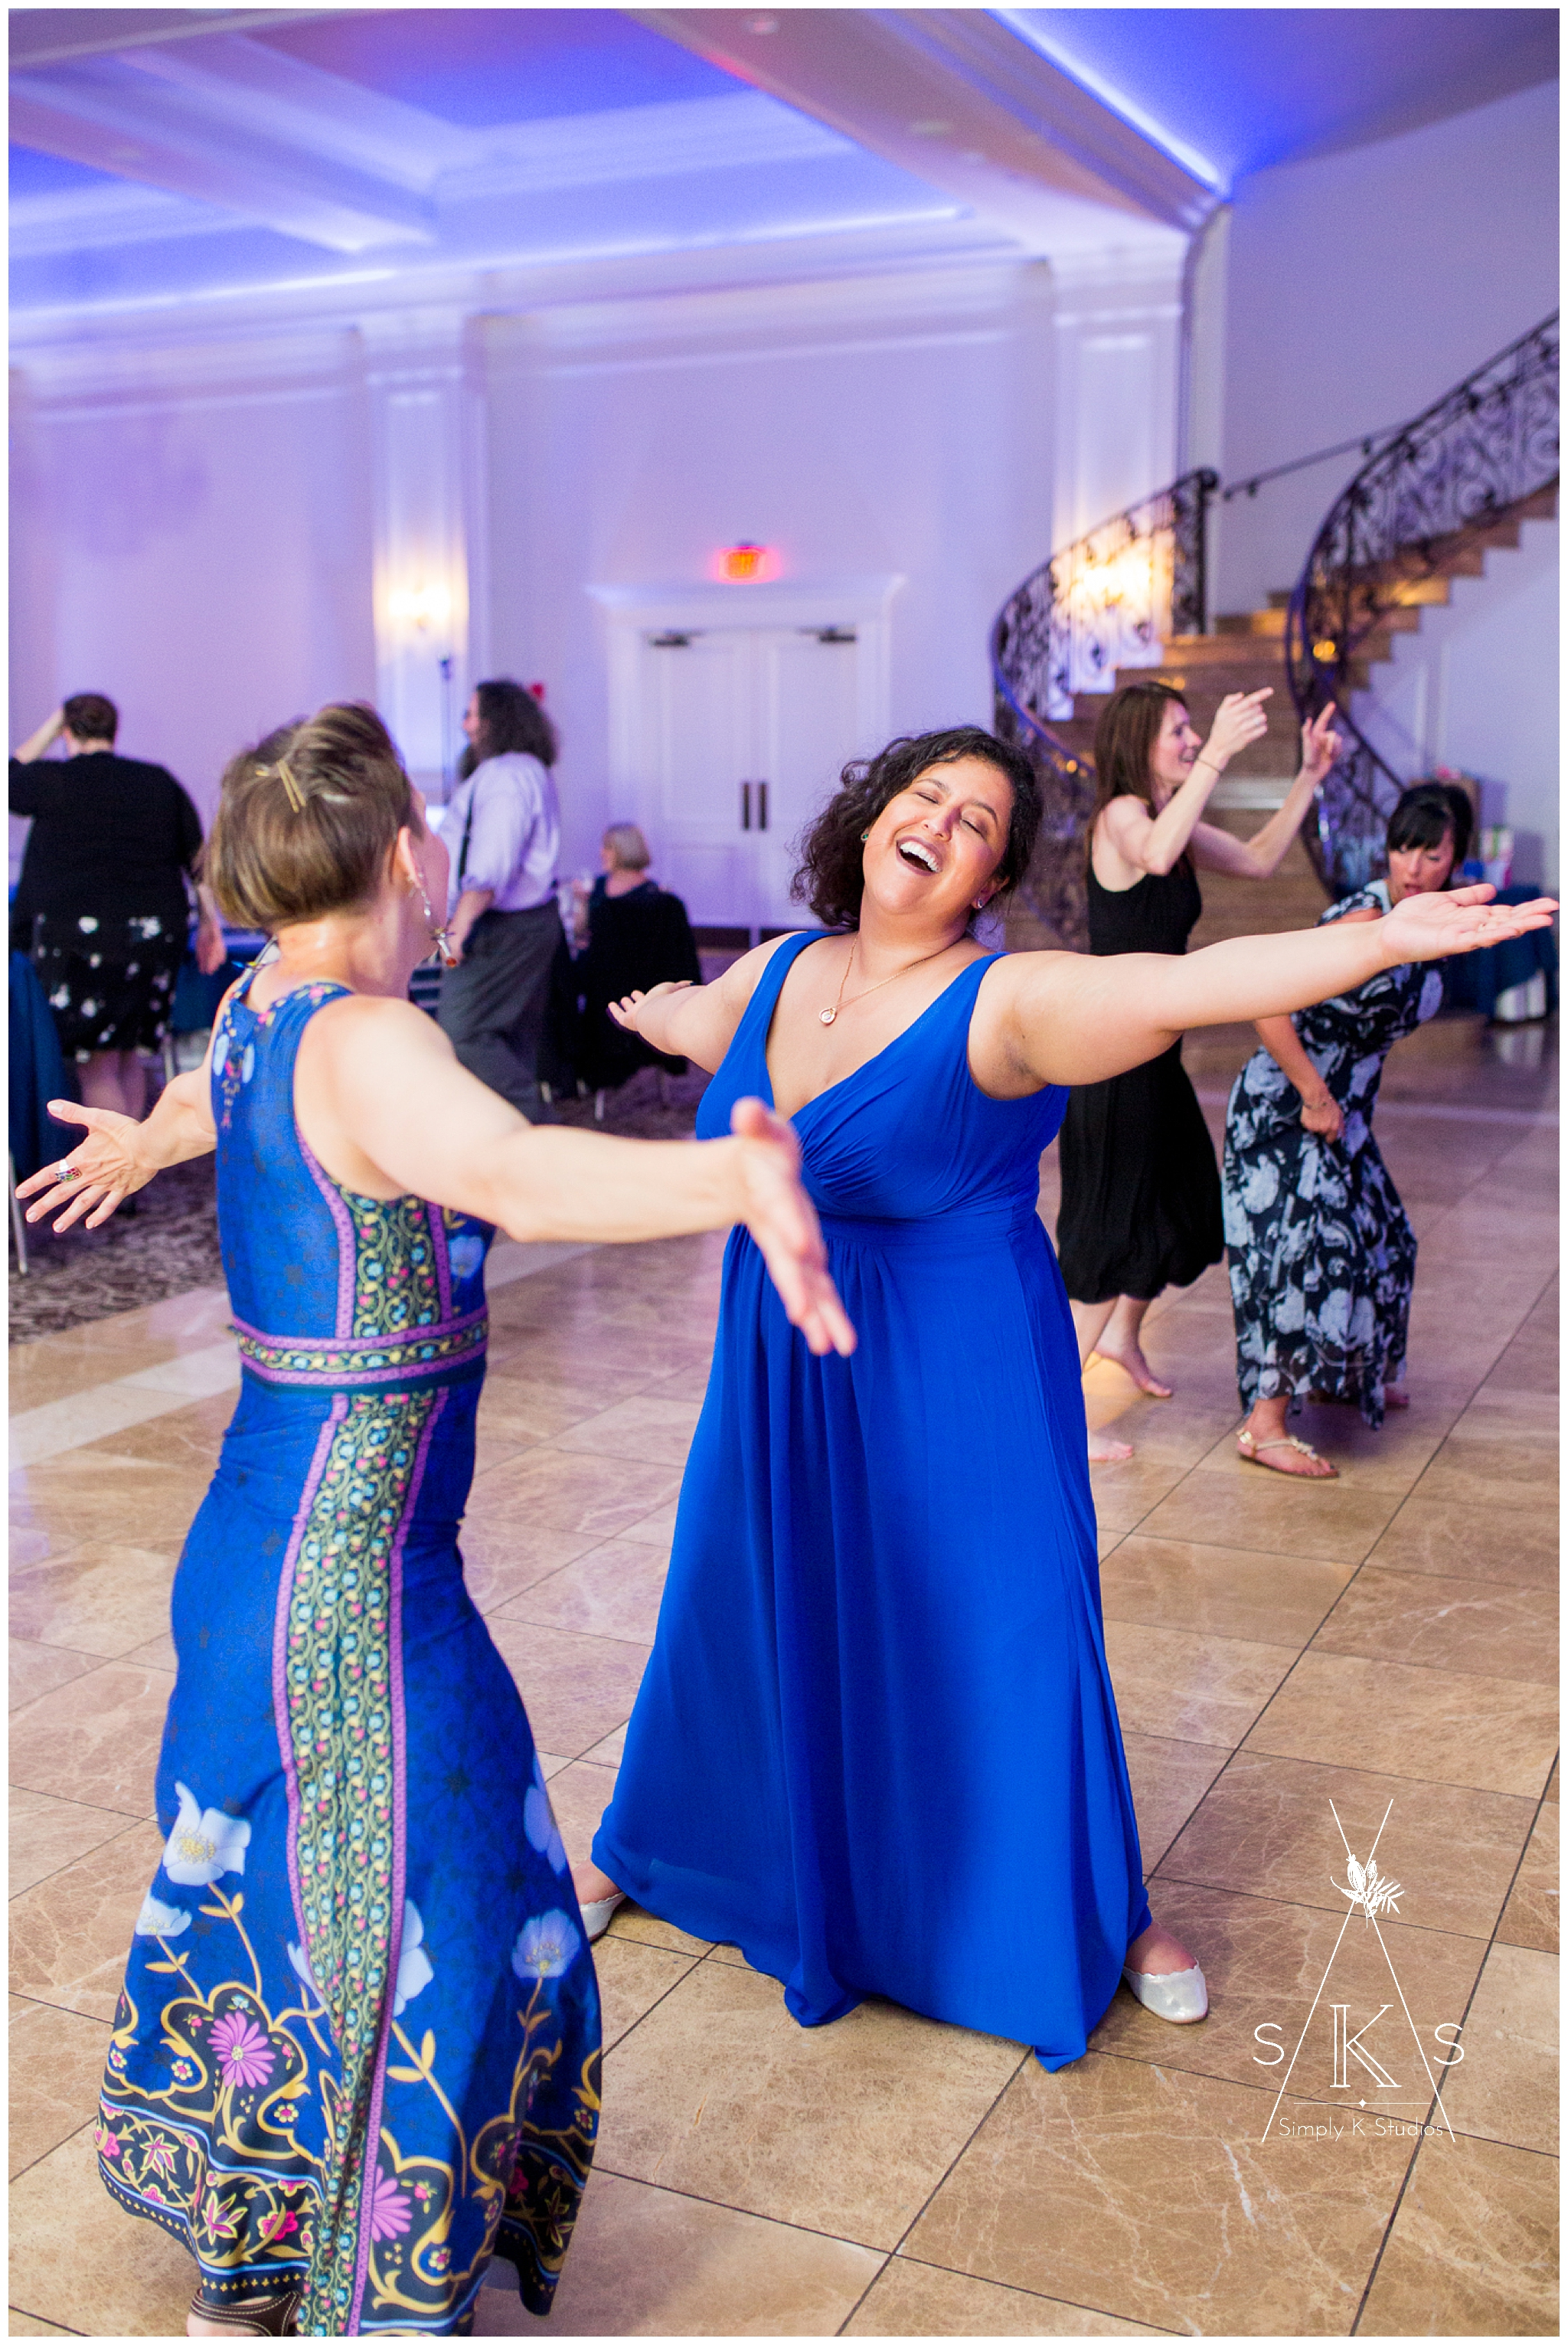 106 Dancing at a Wedding Connecticut.jpg